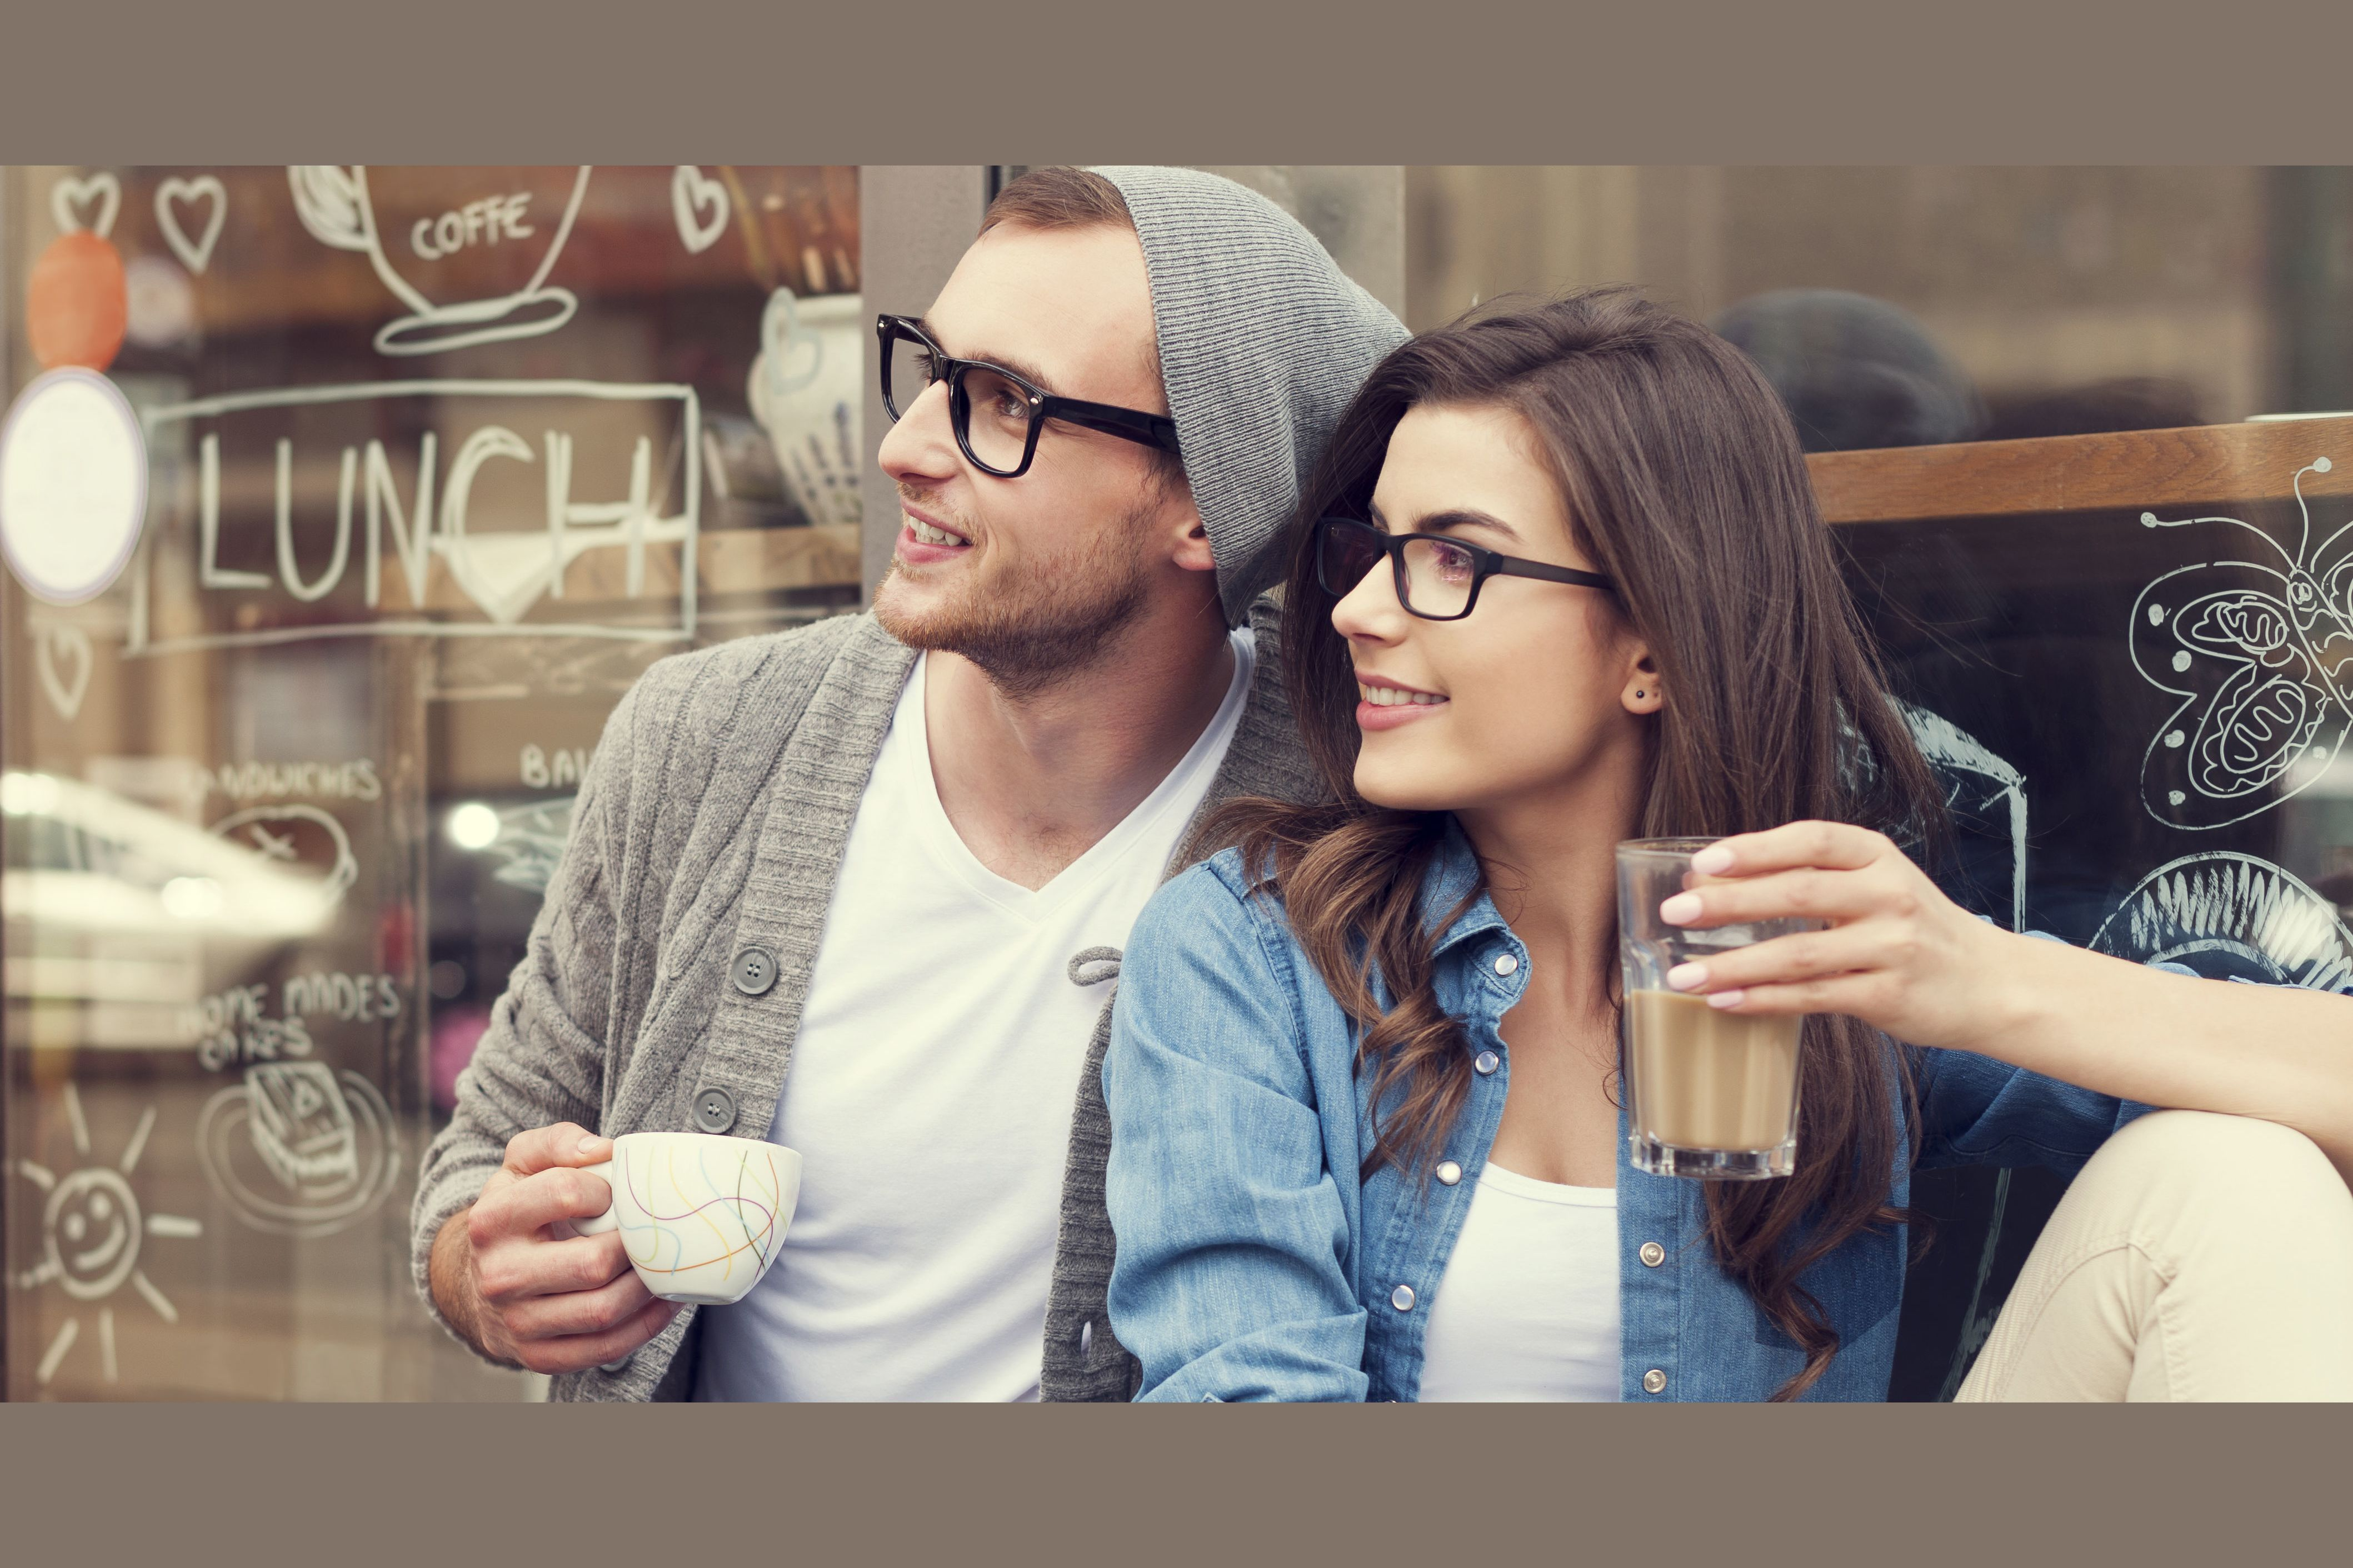 Dating website profile picture tips and tricks